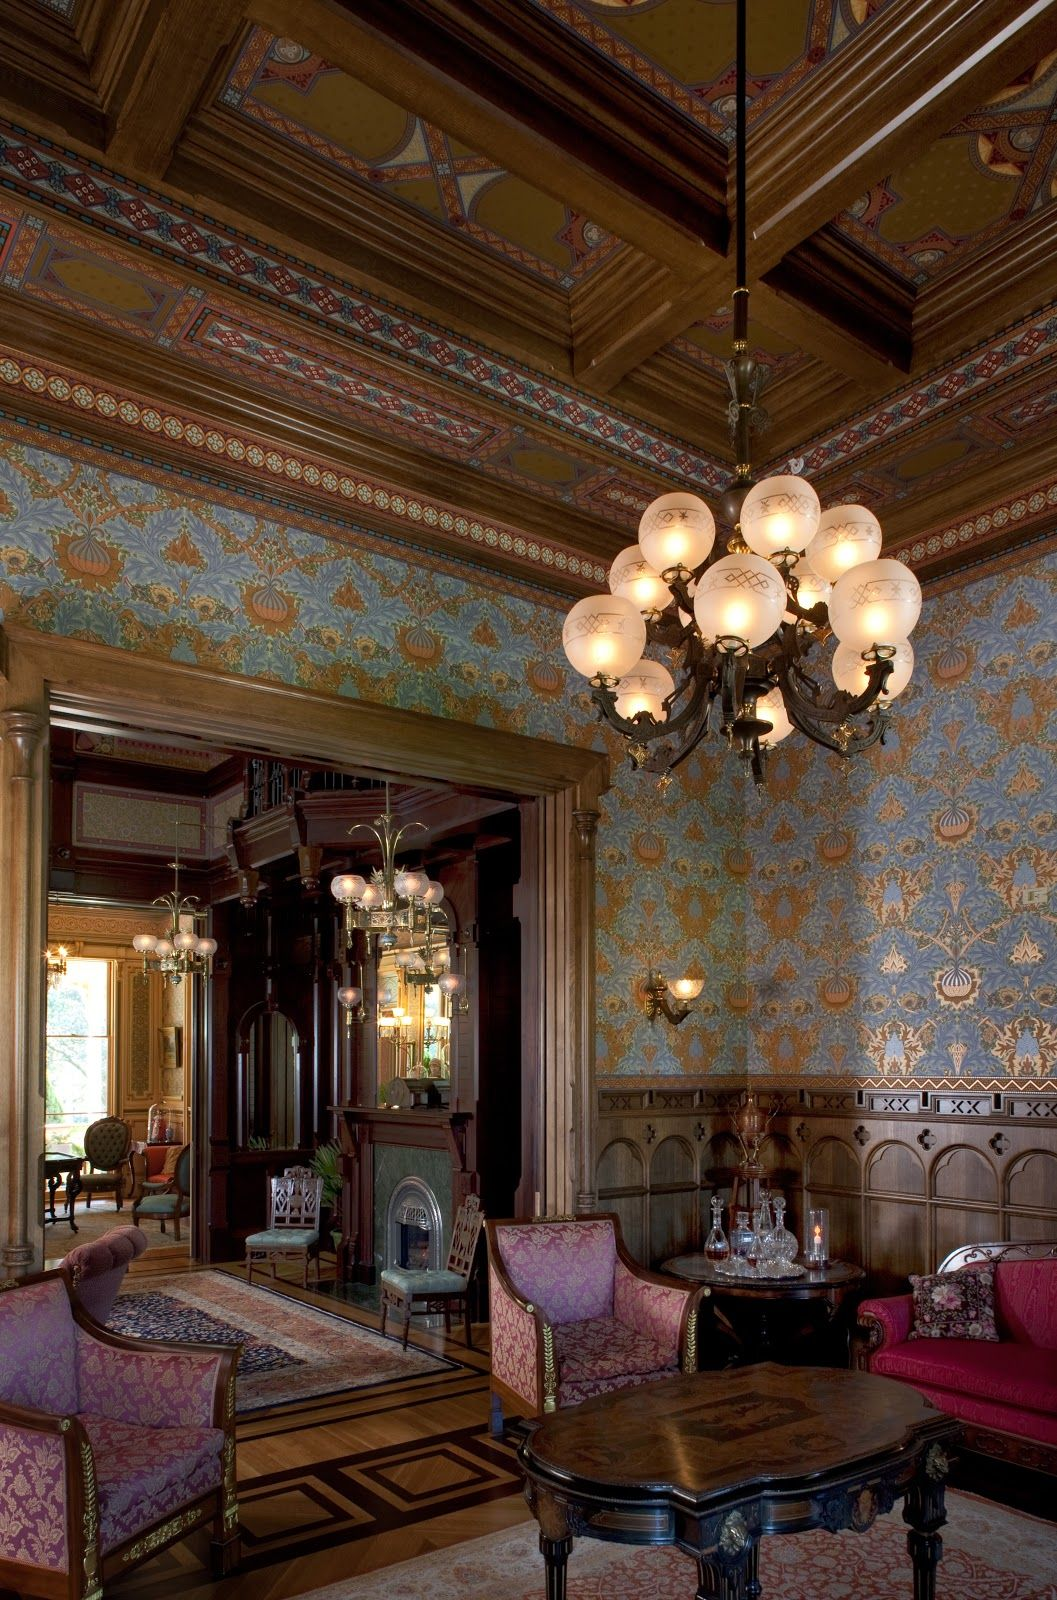 The Gentlemen's Parlor of the McDonald Mansion, Oakland CA, built 1879.  I adore the wallpaper, and the molding and design of the ceiling are fabulous.